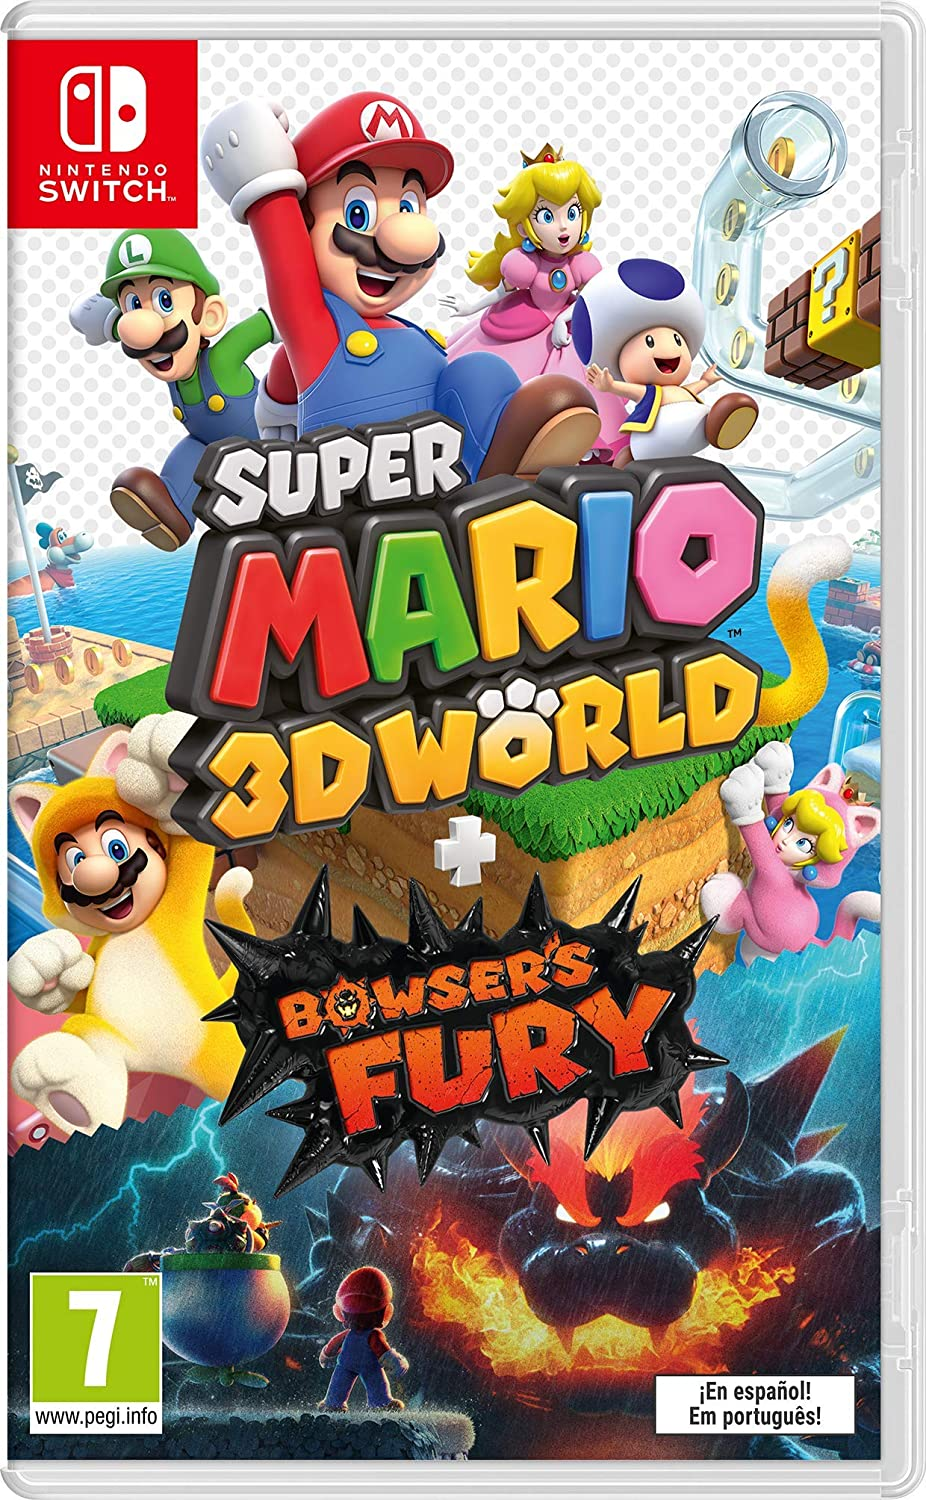 NINTENDO JUEGO SWITCH SUPER MARIO 3D WORLD + BOWSER FURY